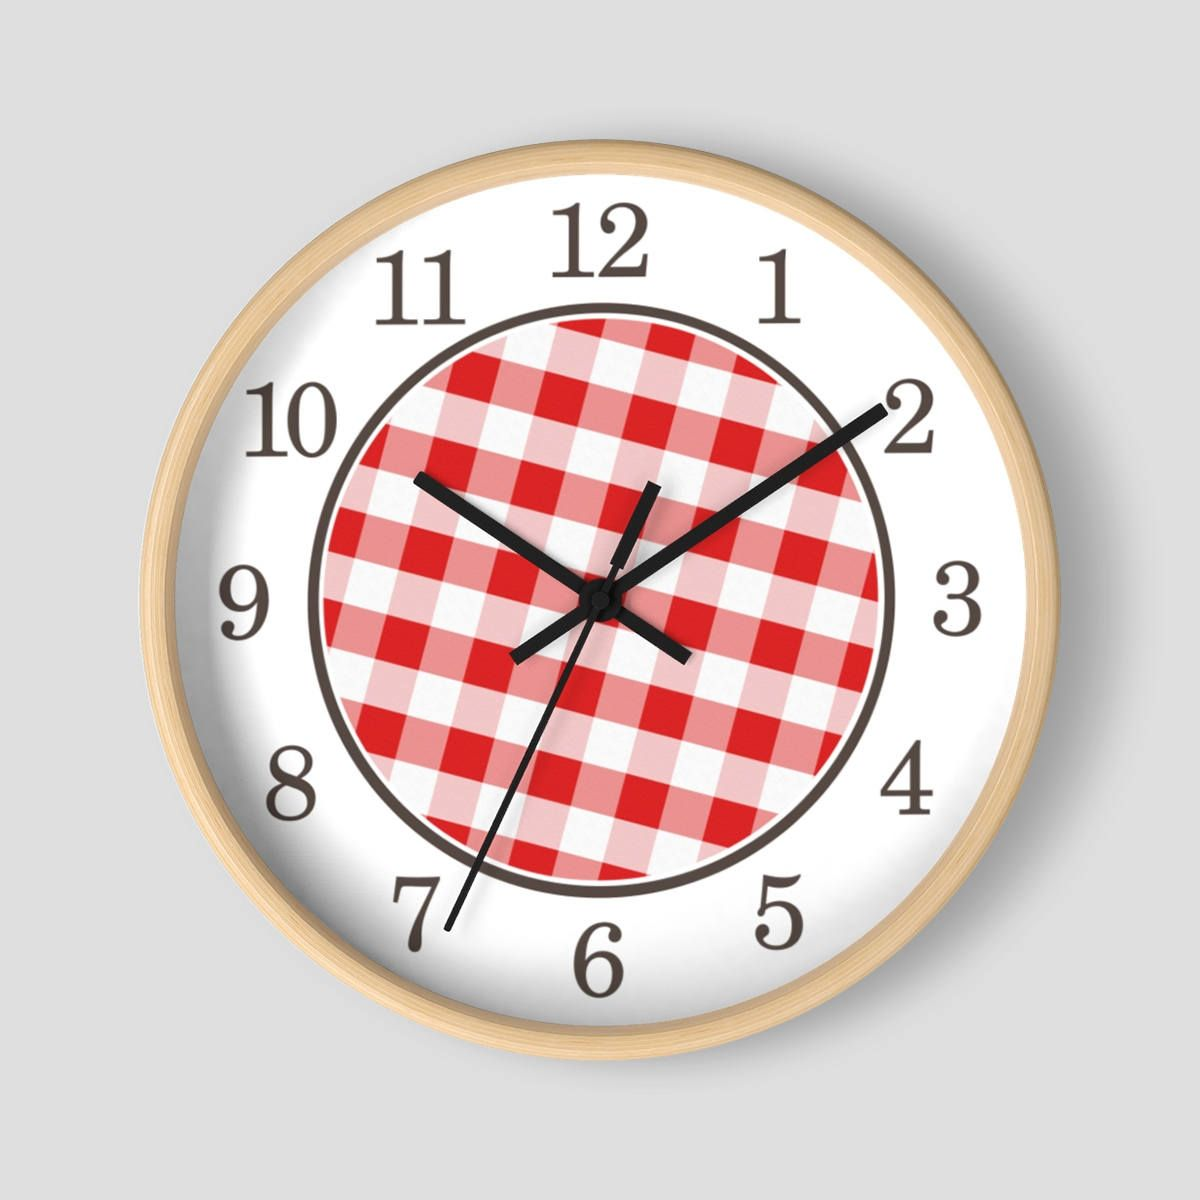 5 Star Review Even Cuter In Person I Love It Marjorie Red Gingham Wall Clock Pattern In Red And White With Wood F In 2020 Wall Clock Clock Best Wall Clocks